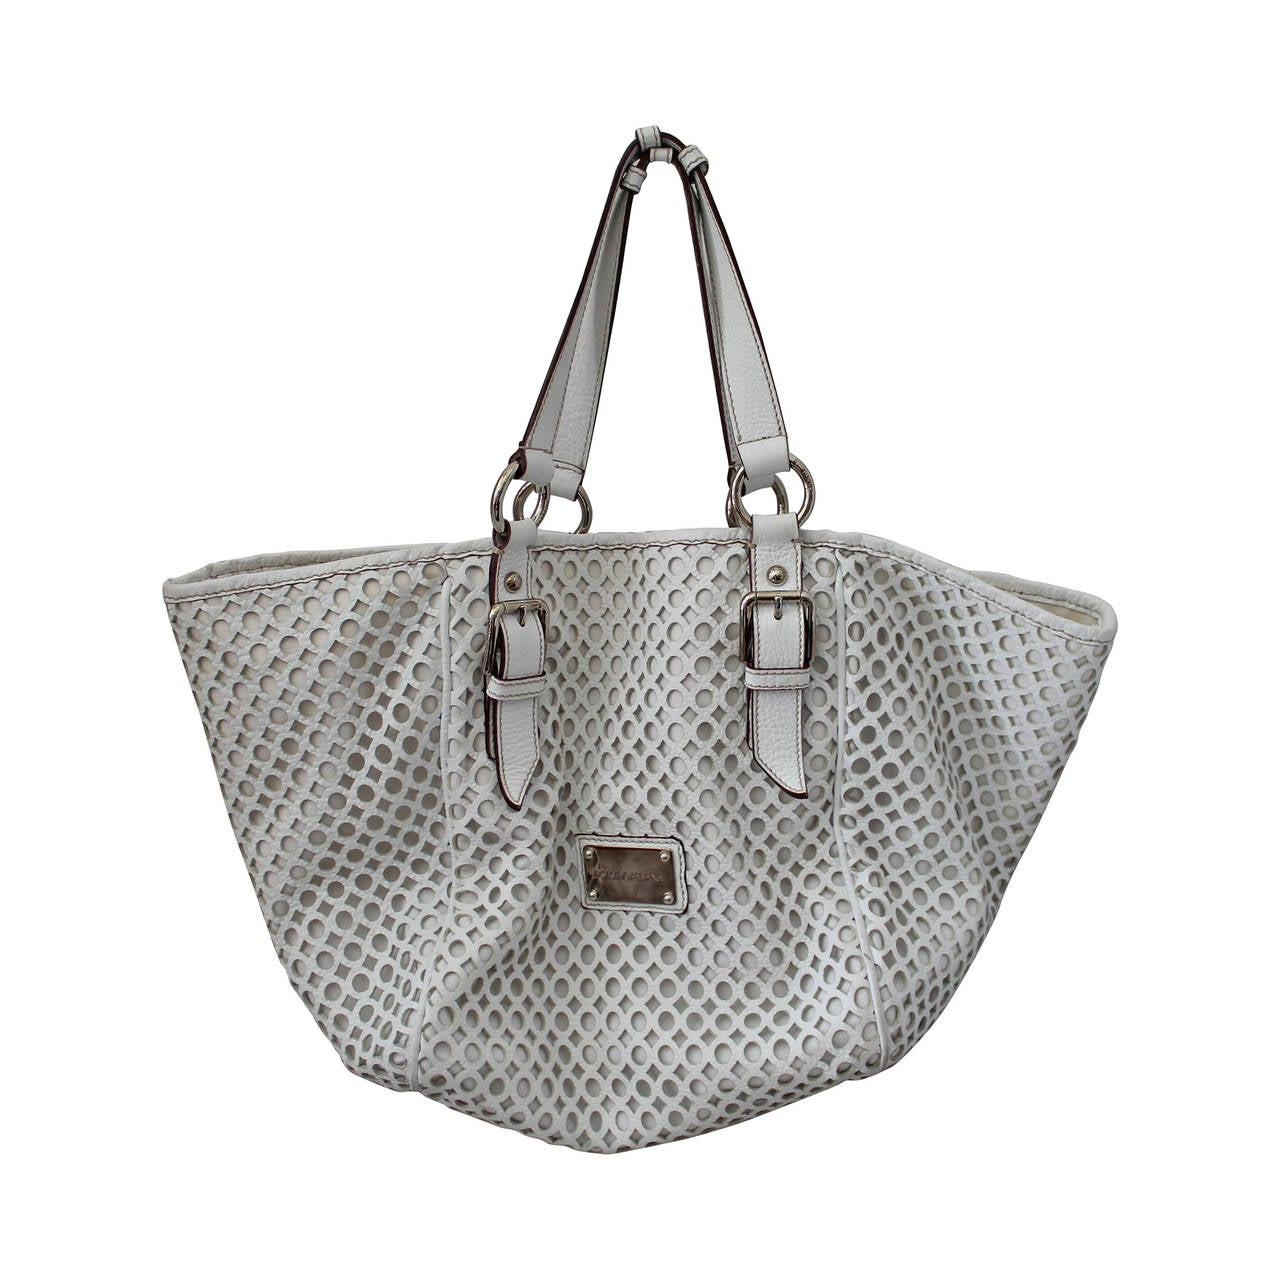 Dolce Gabbana White Perforated Leather Shoulder Bag For